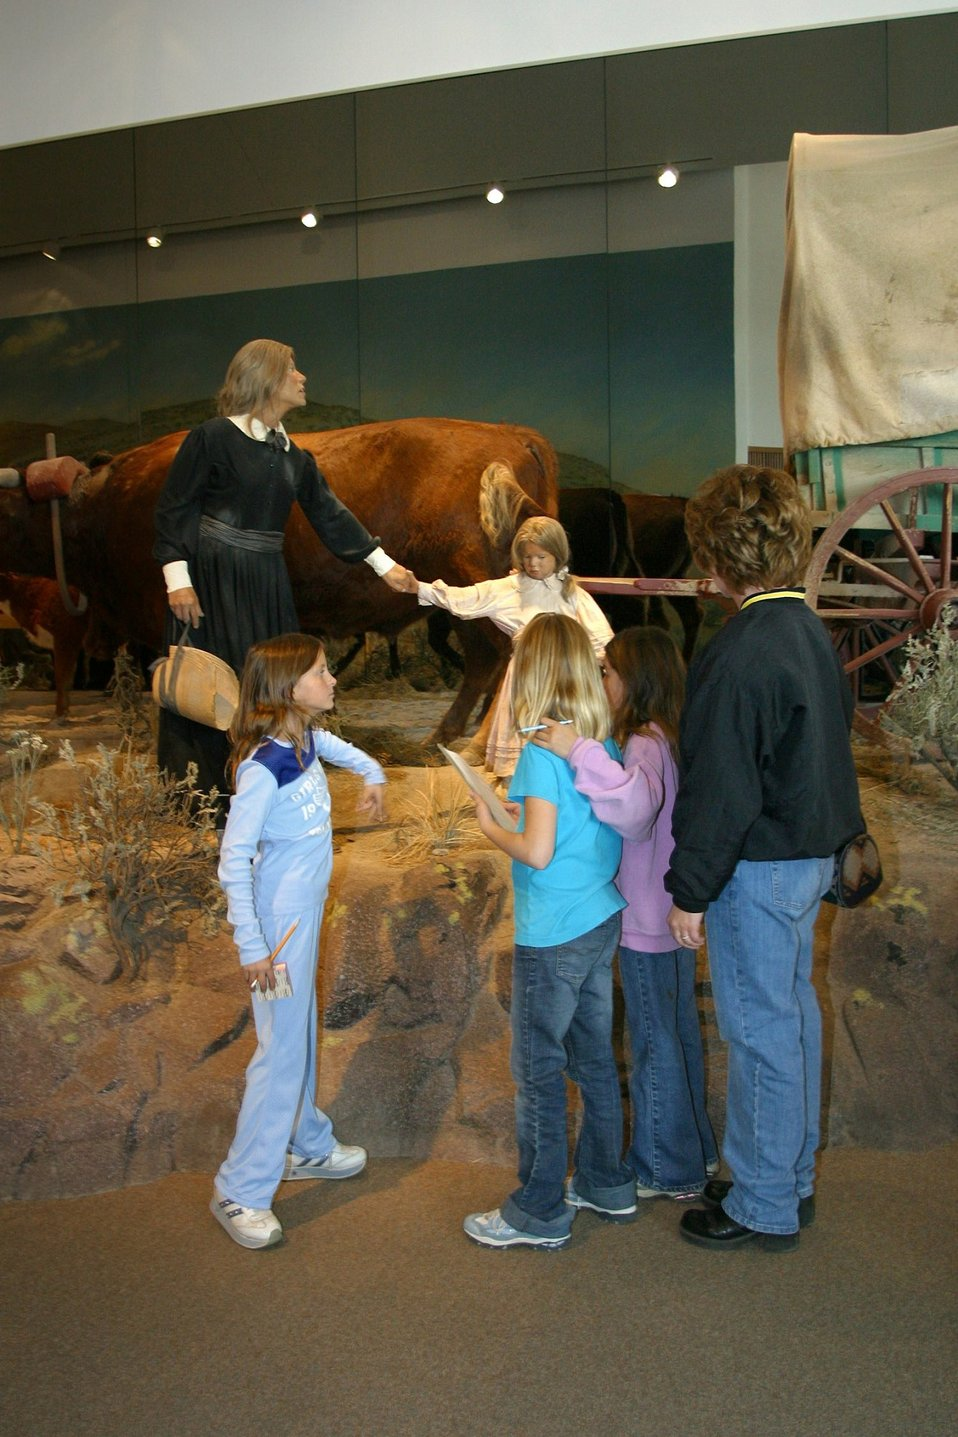 Hundreds of school children visit the National Historic Oregon Trail Interpretive Center every year.